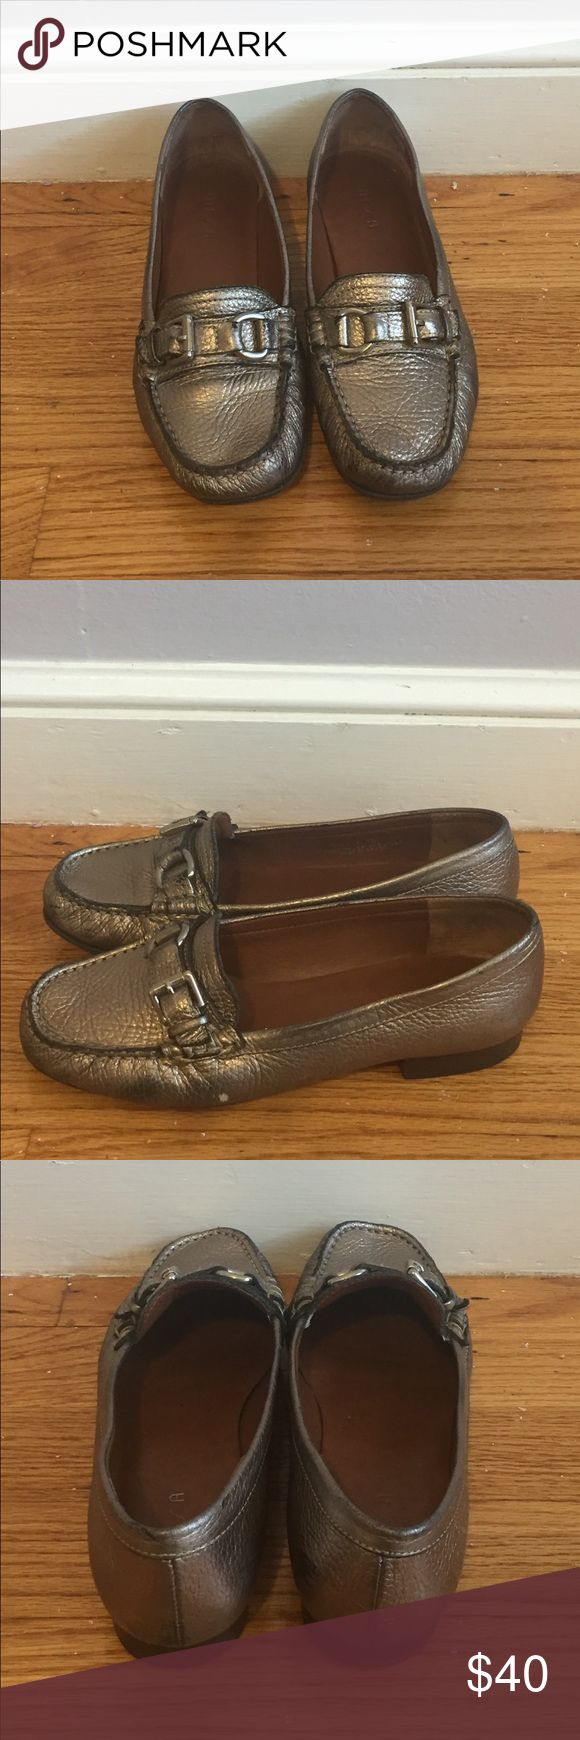 """Unisa Women's Metallic Leather Loafer Sz 7B😍 Unisa Women's Metallic Leather Loafer Sz 7B😍. In good preloved condition. These fit more like a women's Sz 7.5. The masculine shoes for the most feminine look - these are an eye catching metallic pewter. Gorgeous and super comfortable. These have some wear to them on the soles, and blackish scuffs. Definitely does not detract from the stylish silhouette of the shoe itself. Please look at all the photos and ask questions if you have any. 1"""" heel…"""